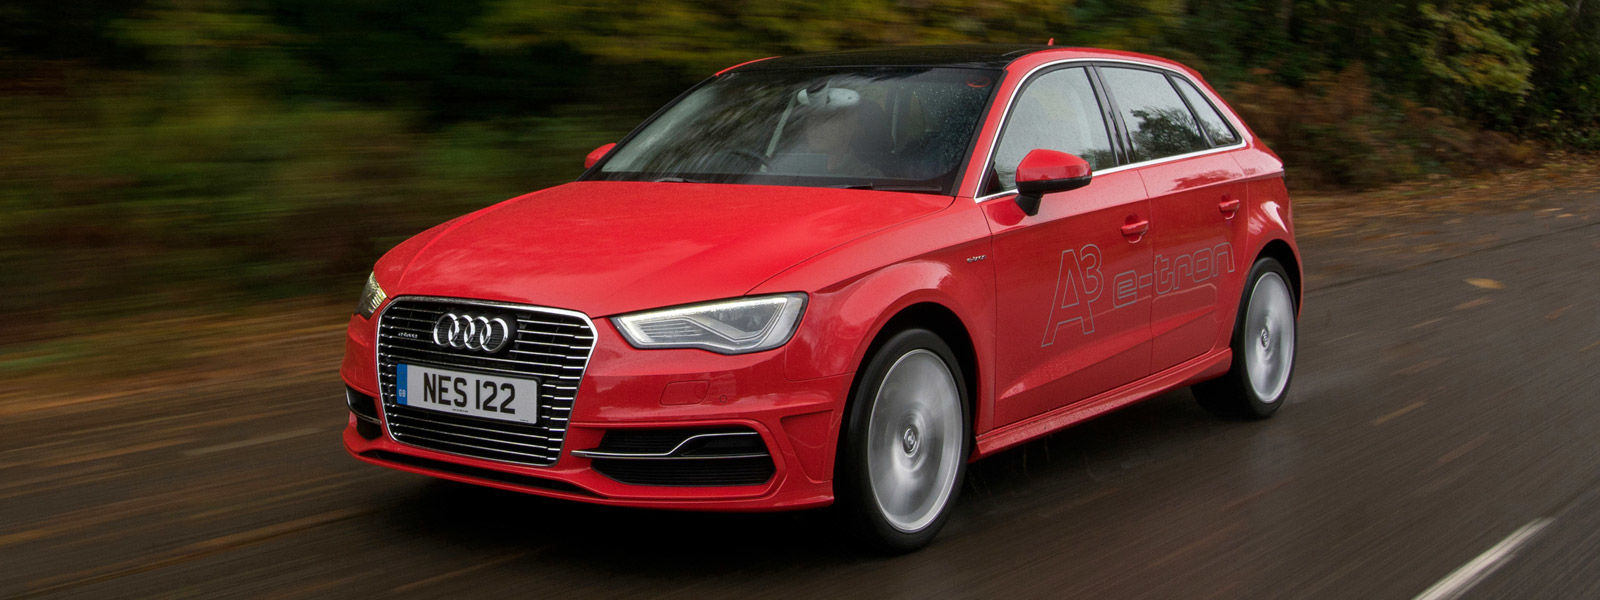 The 10 best safe small cars using Euro NCAP data   carwow